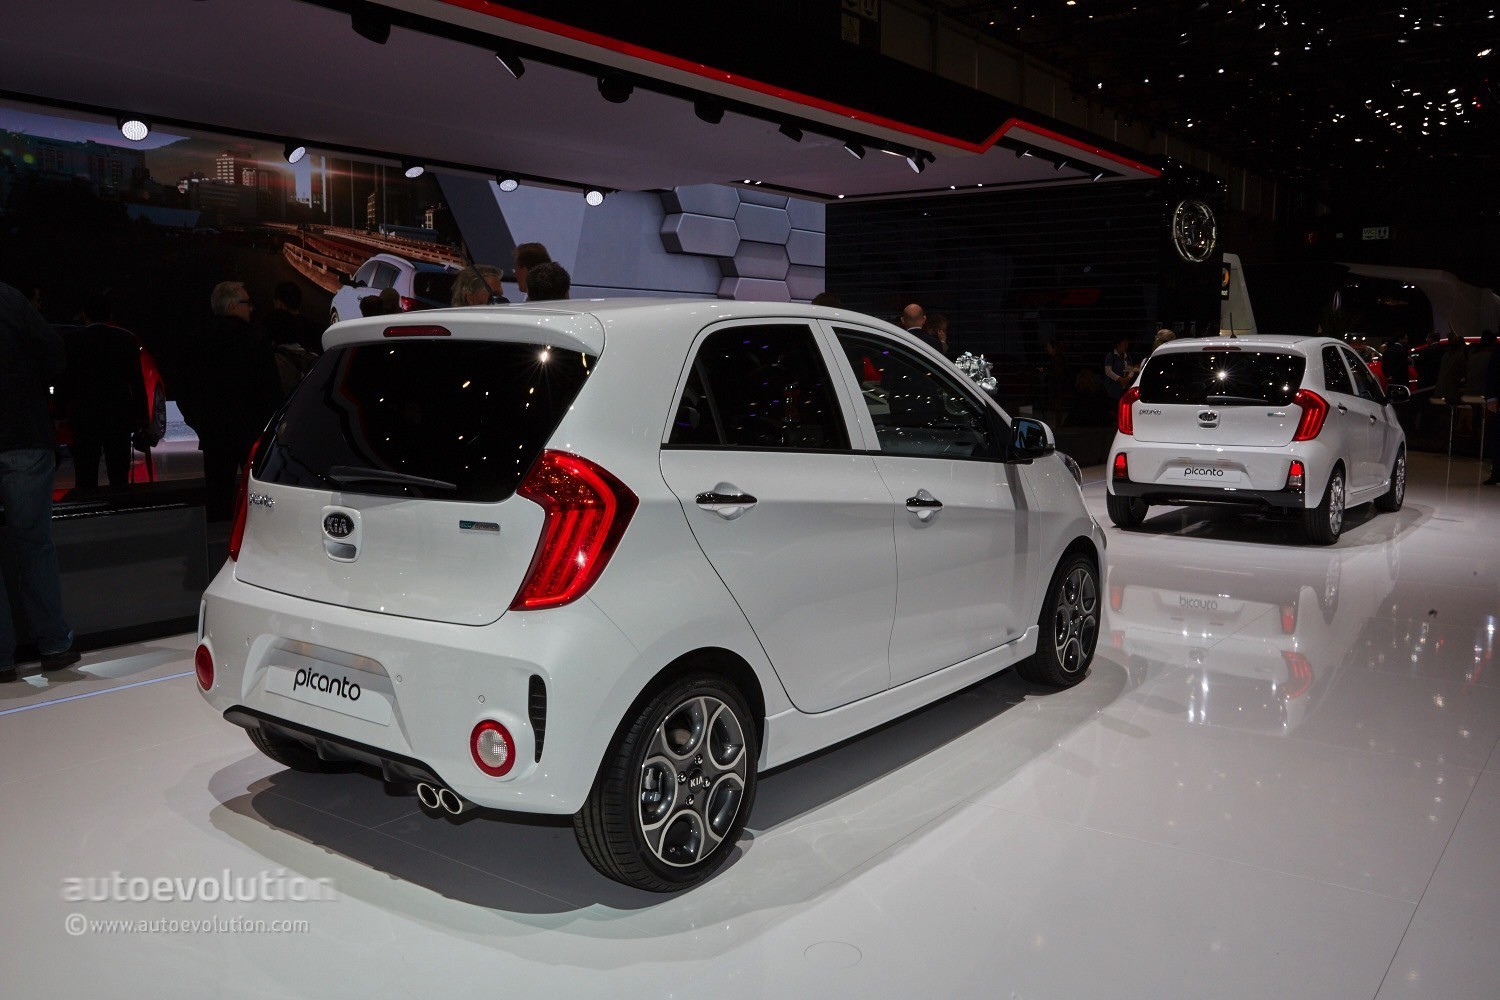 2015 Kia Picanto Facelift Arrived In Geneva With A Fixed